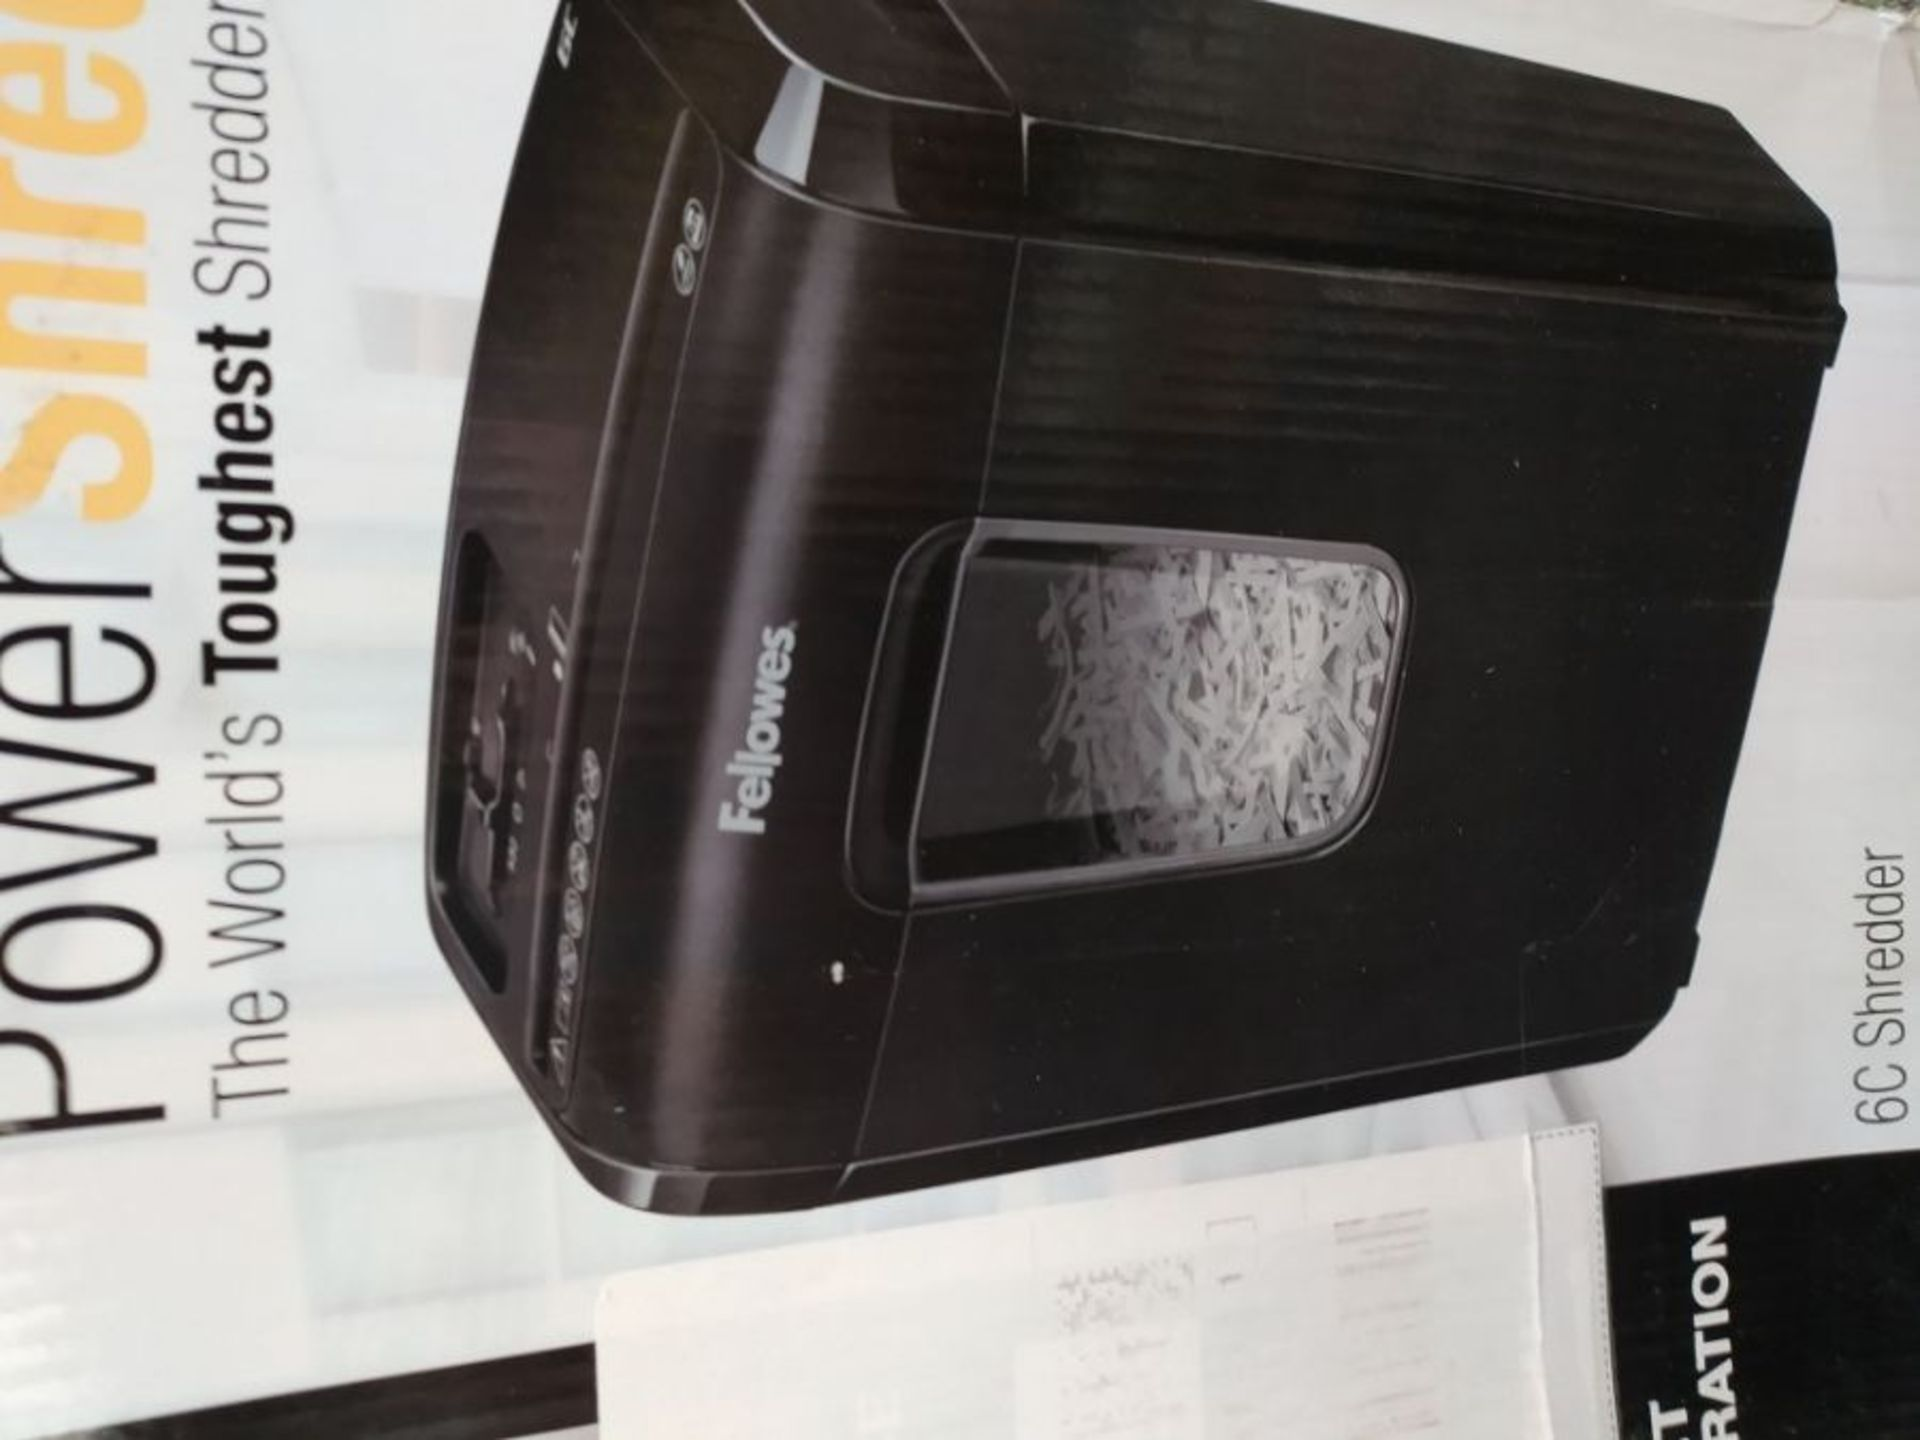 Fellowes Powershred 6C Personal 6 Sheet Cross Cut Paper Shredder for Home Use with Saf - Image 2 of 2